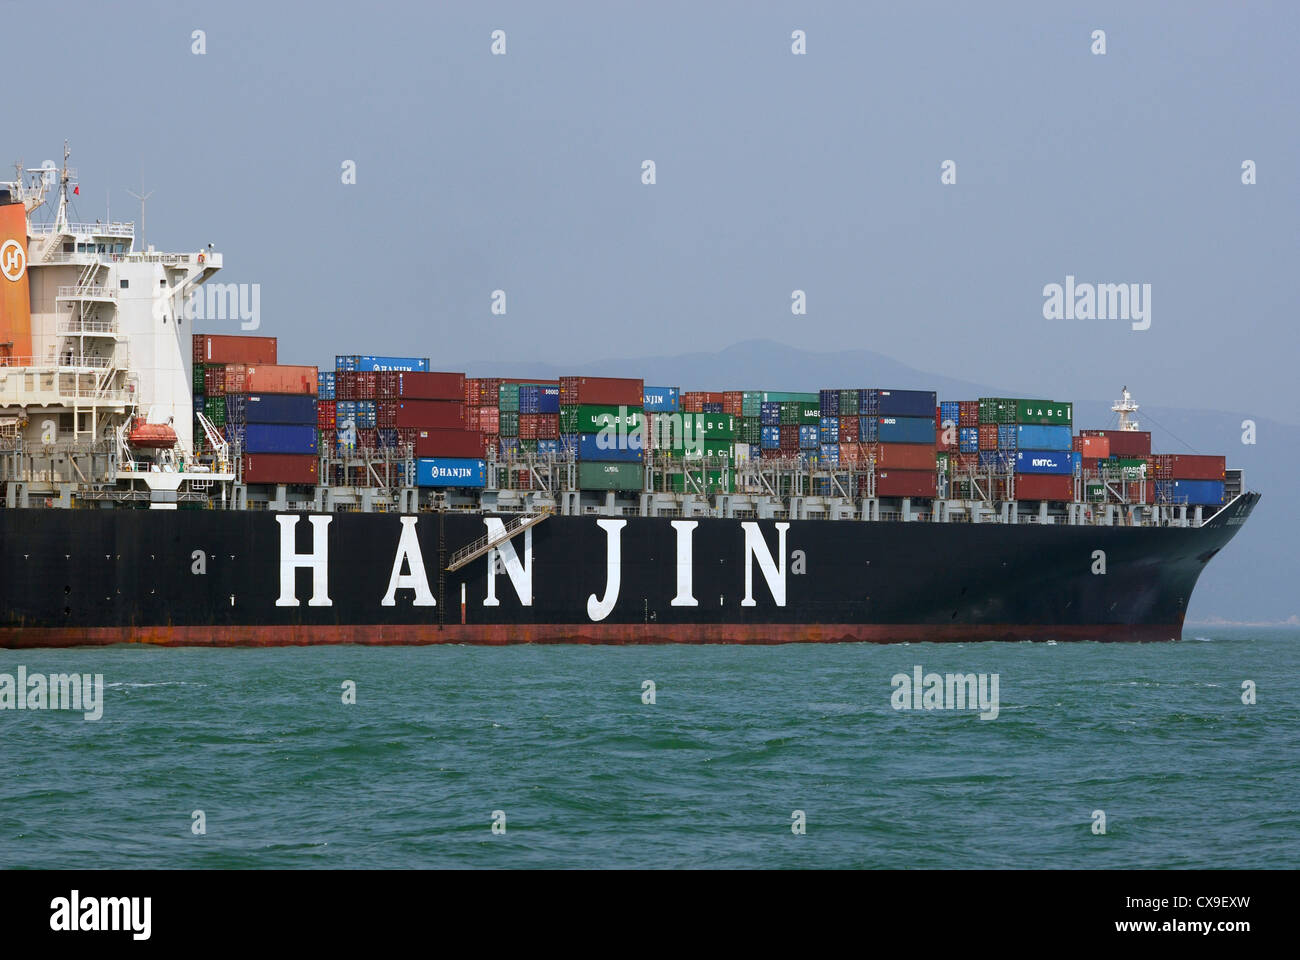 Portside of Hanjin container freighter traveling in the West Lamma Channel of Hong Kong, China. - Stock Image